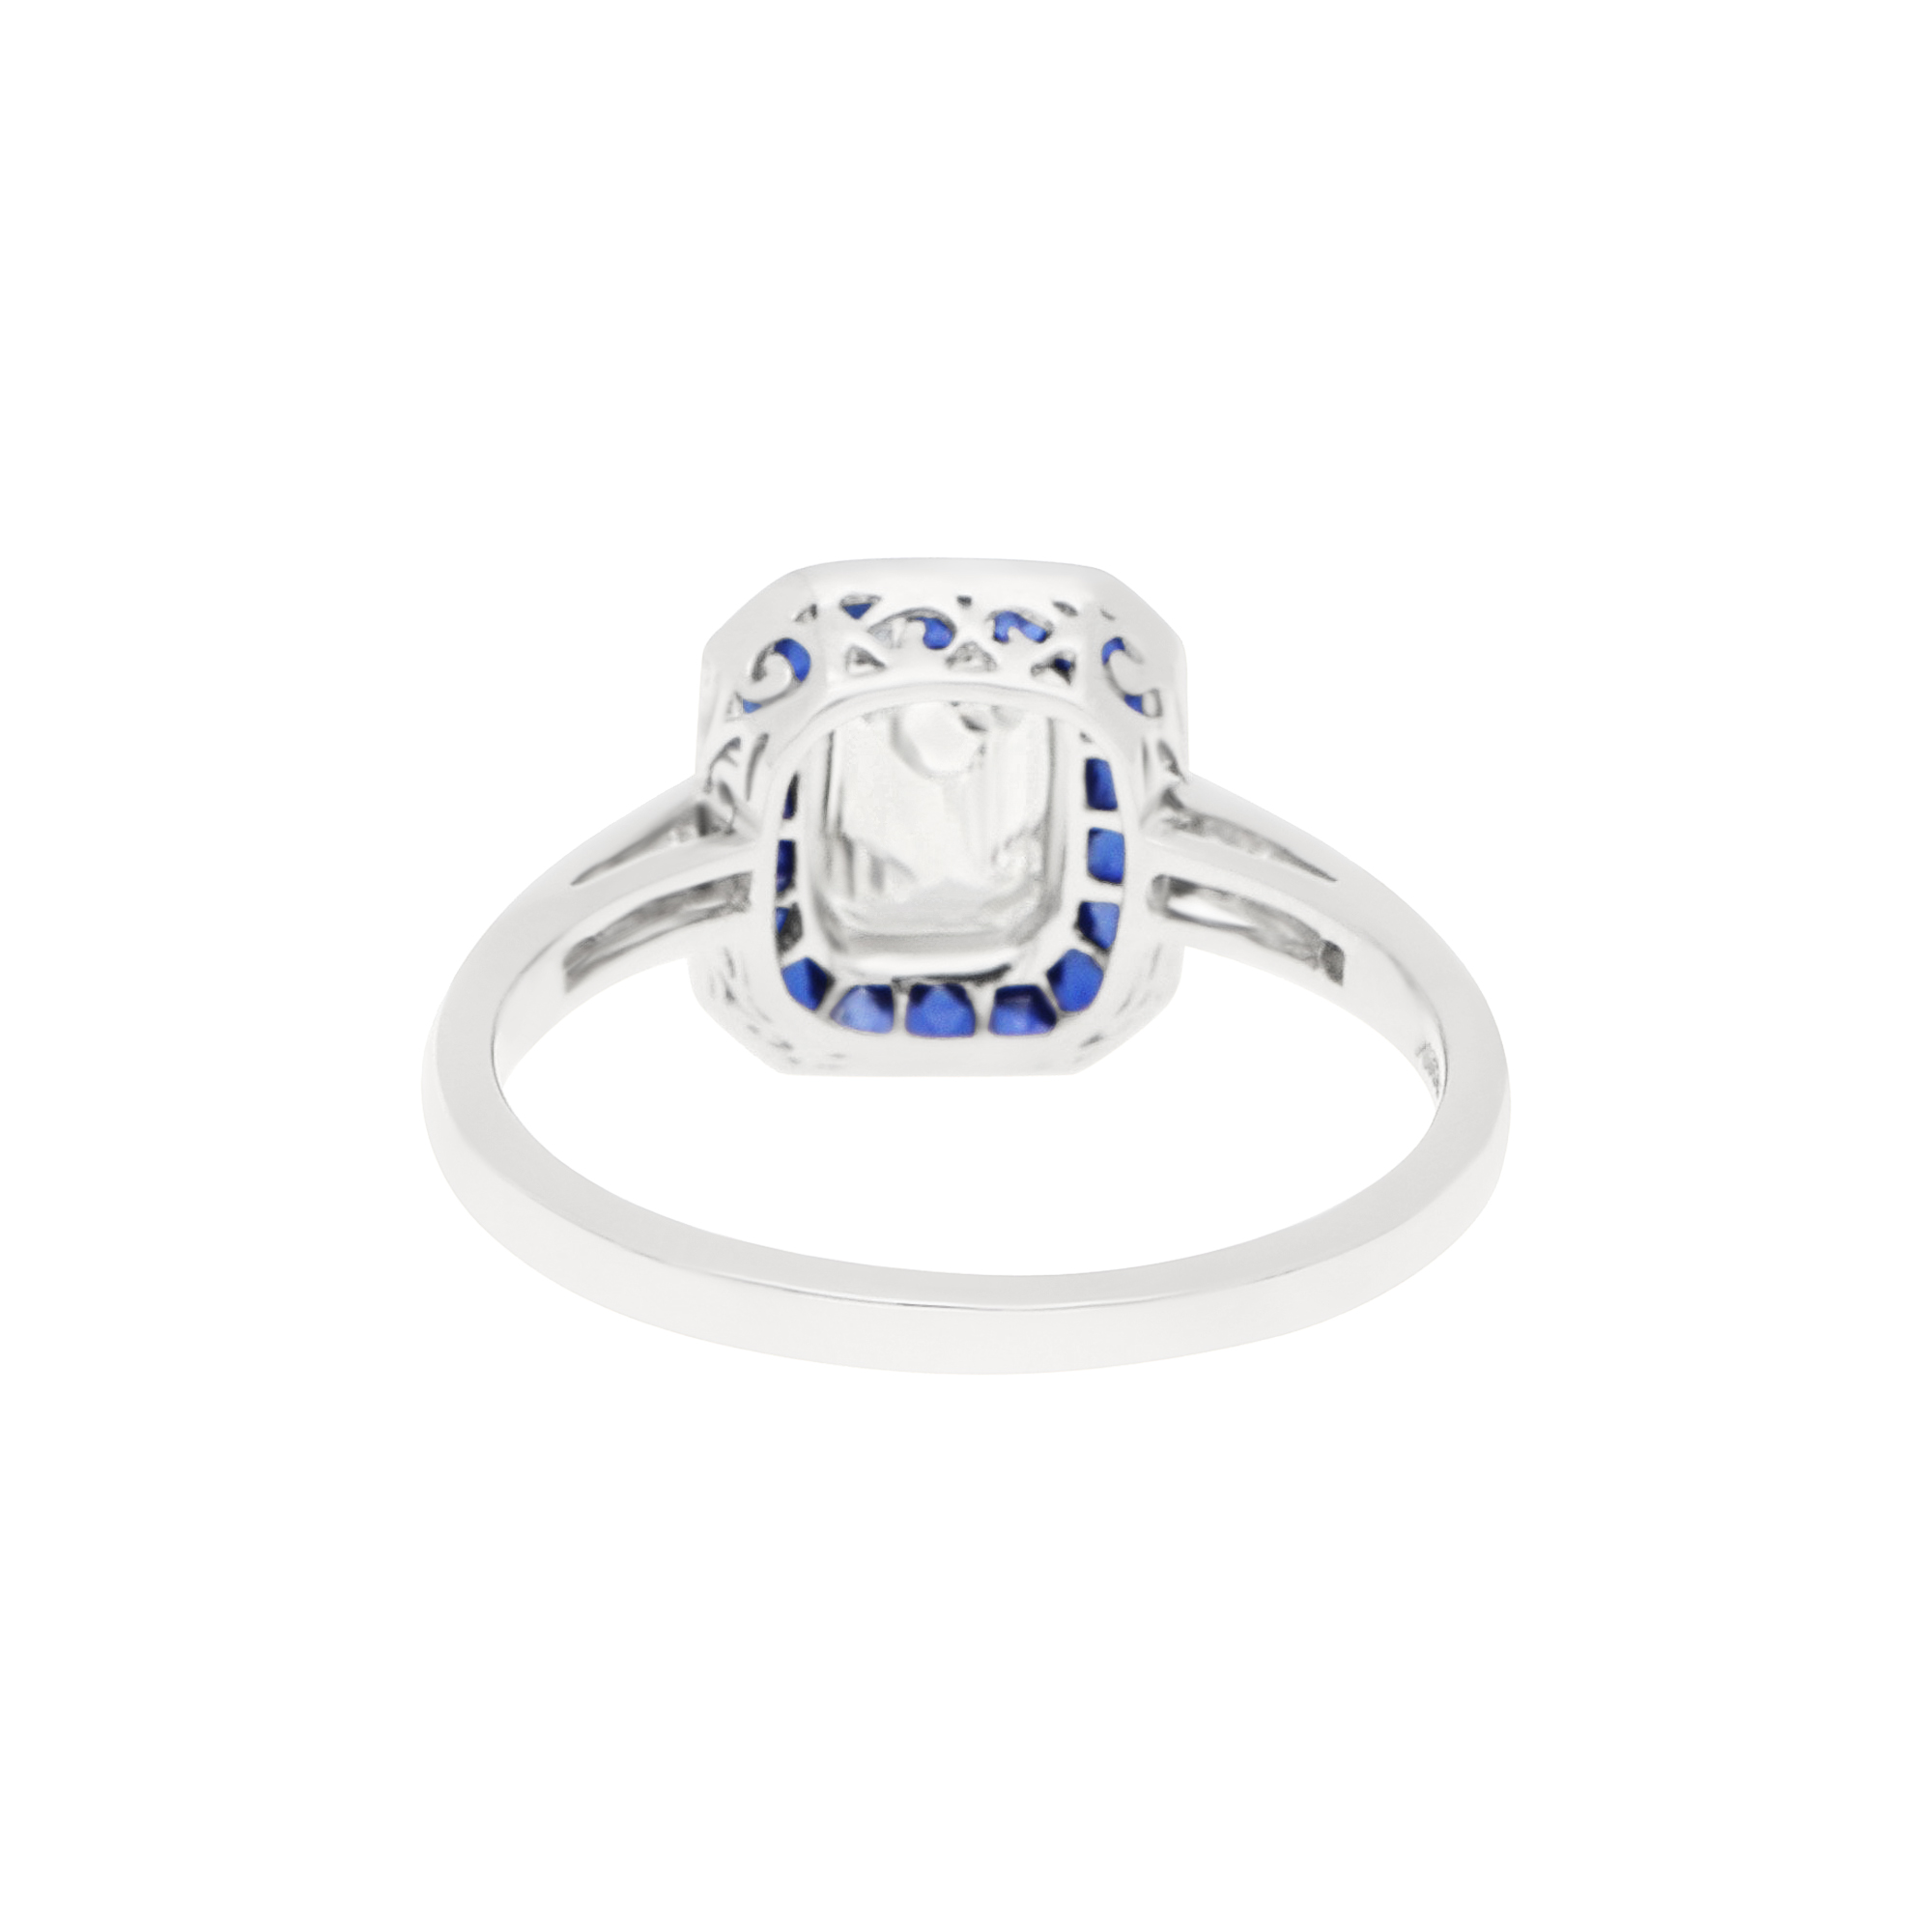 Art Deco Style Emerald Cut Diamond Sapphire Target Ring Platinum At Susannah Lovis Antique Jewellery